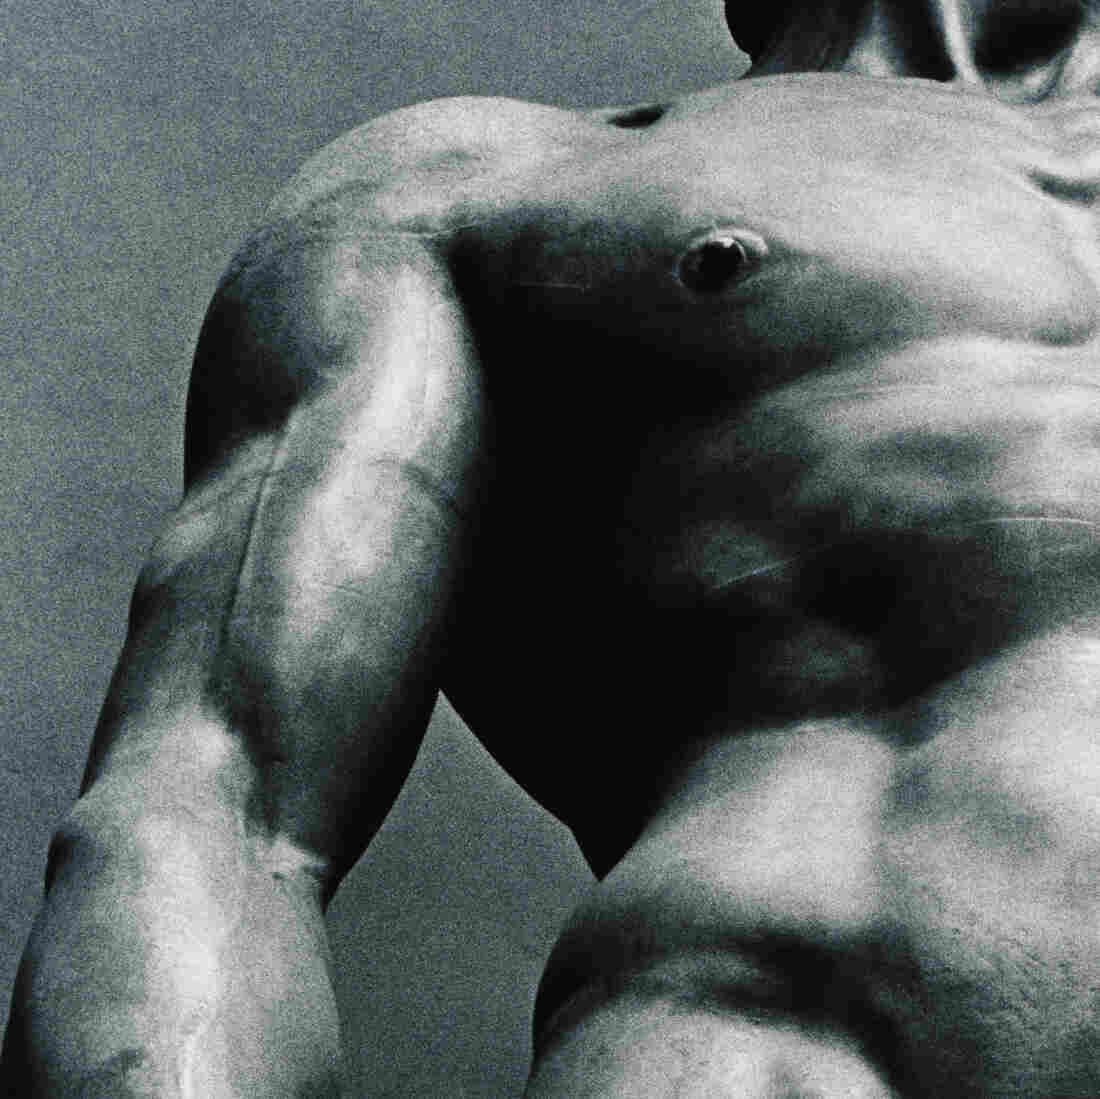 Some men take testosterone hoping to boost energy and libido, or to build strength. But at what risk?